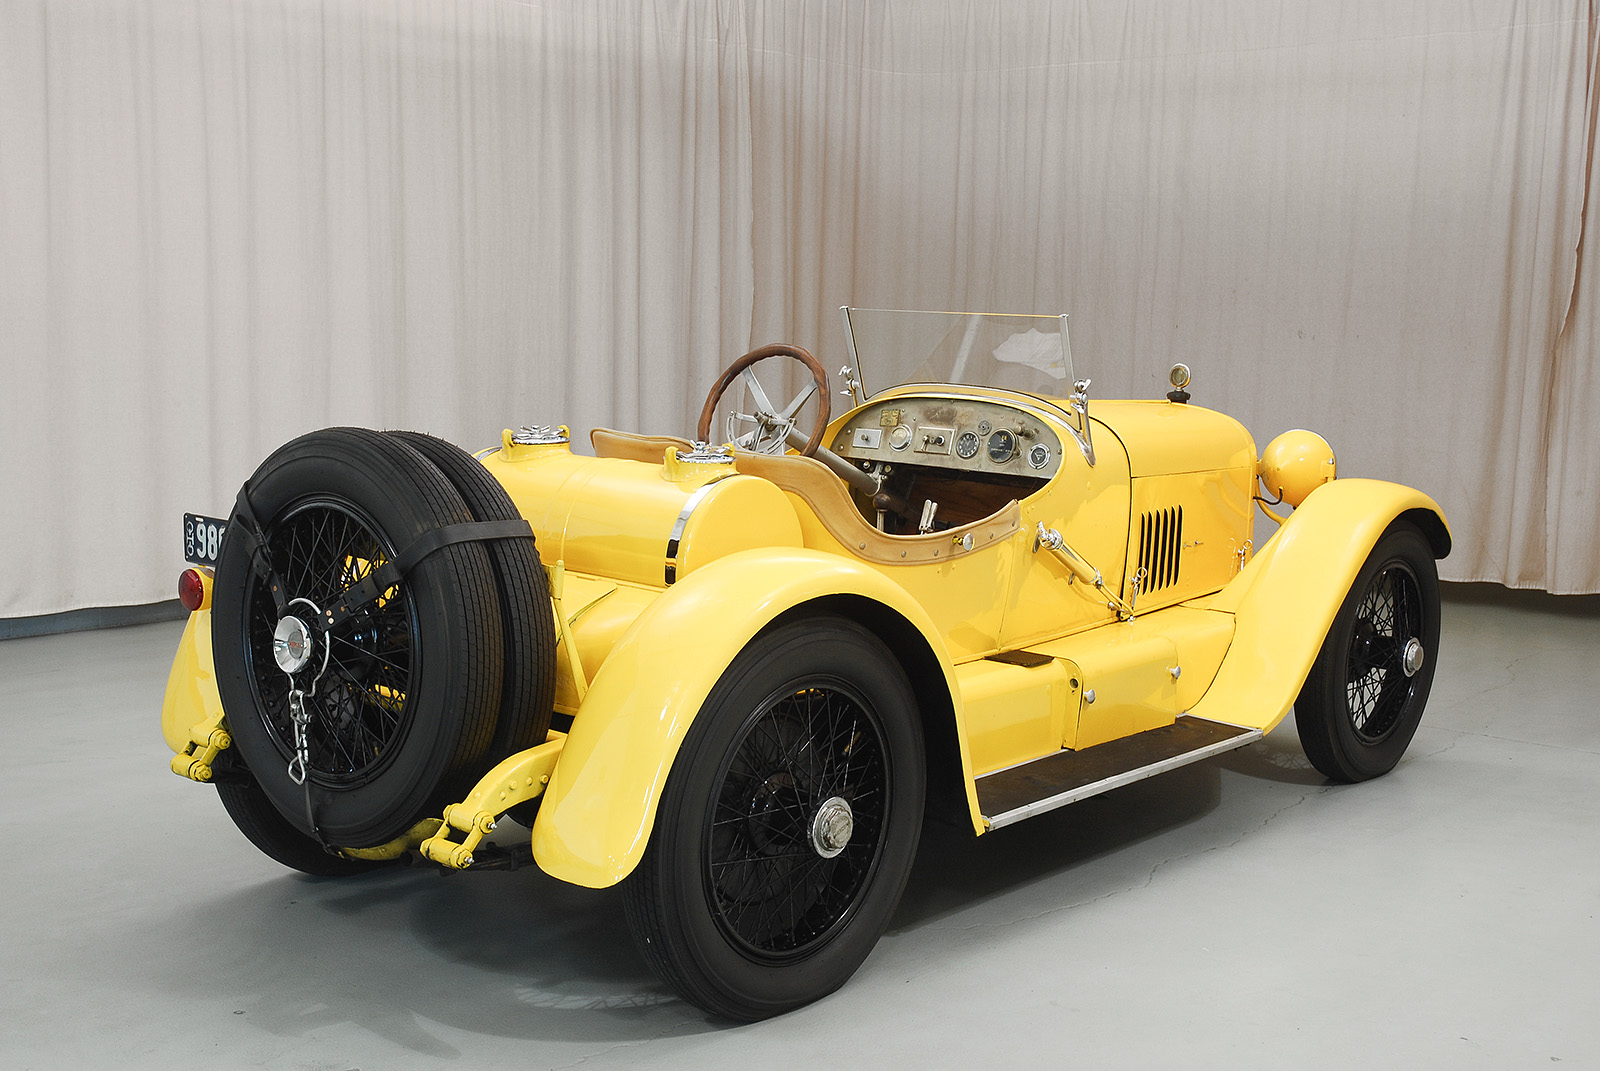 1920 Mercer Series 5 Raceabout | Hyman Ltd. Classic Cars